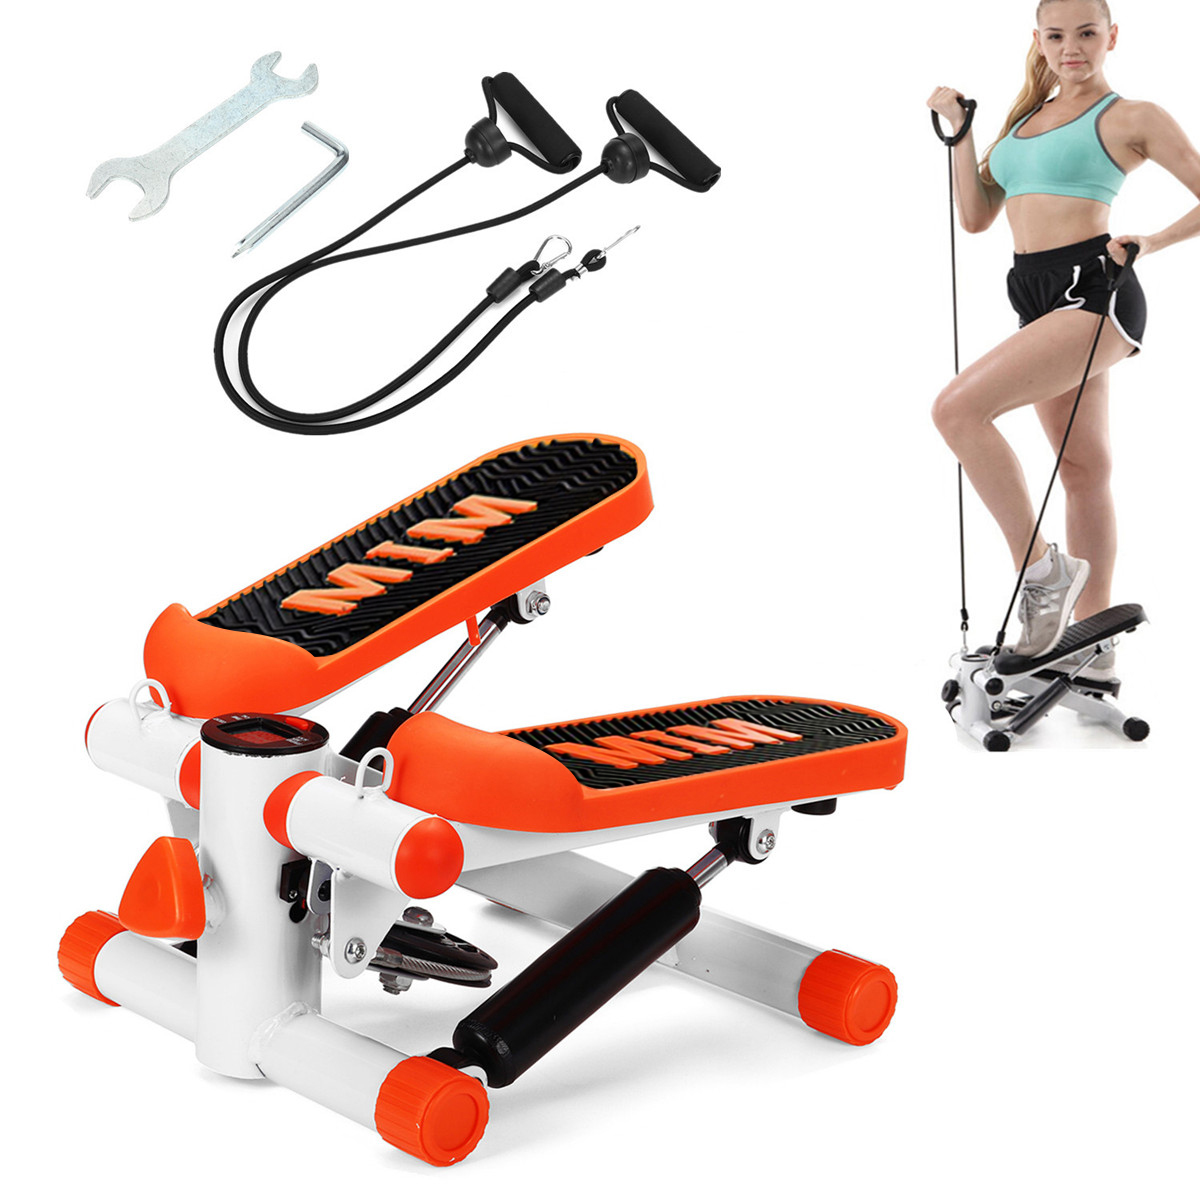 Details about  /Exercise Pedal Mini Cycle Fitness Stepper Trainer Bike LCD Display Home Gym US